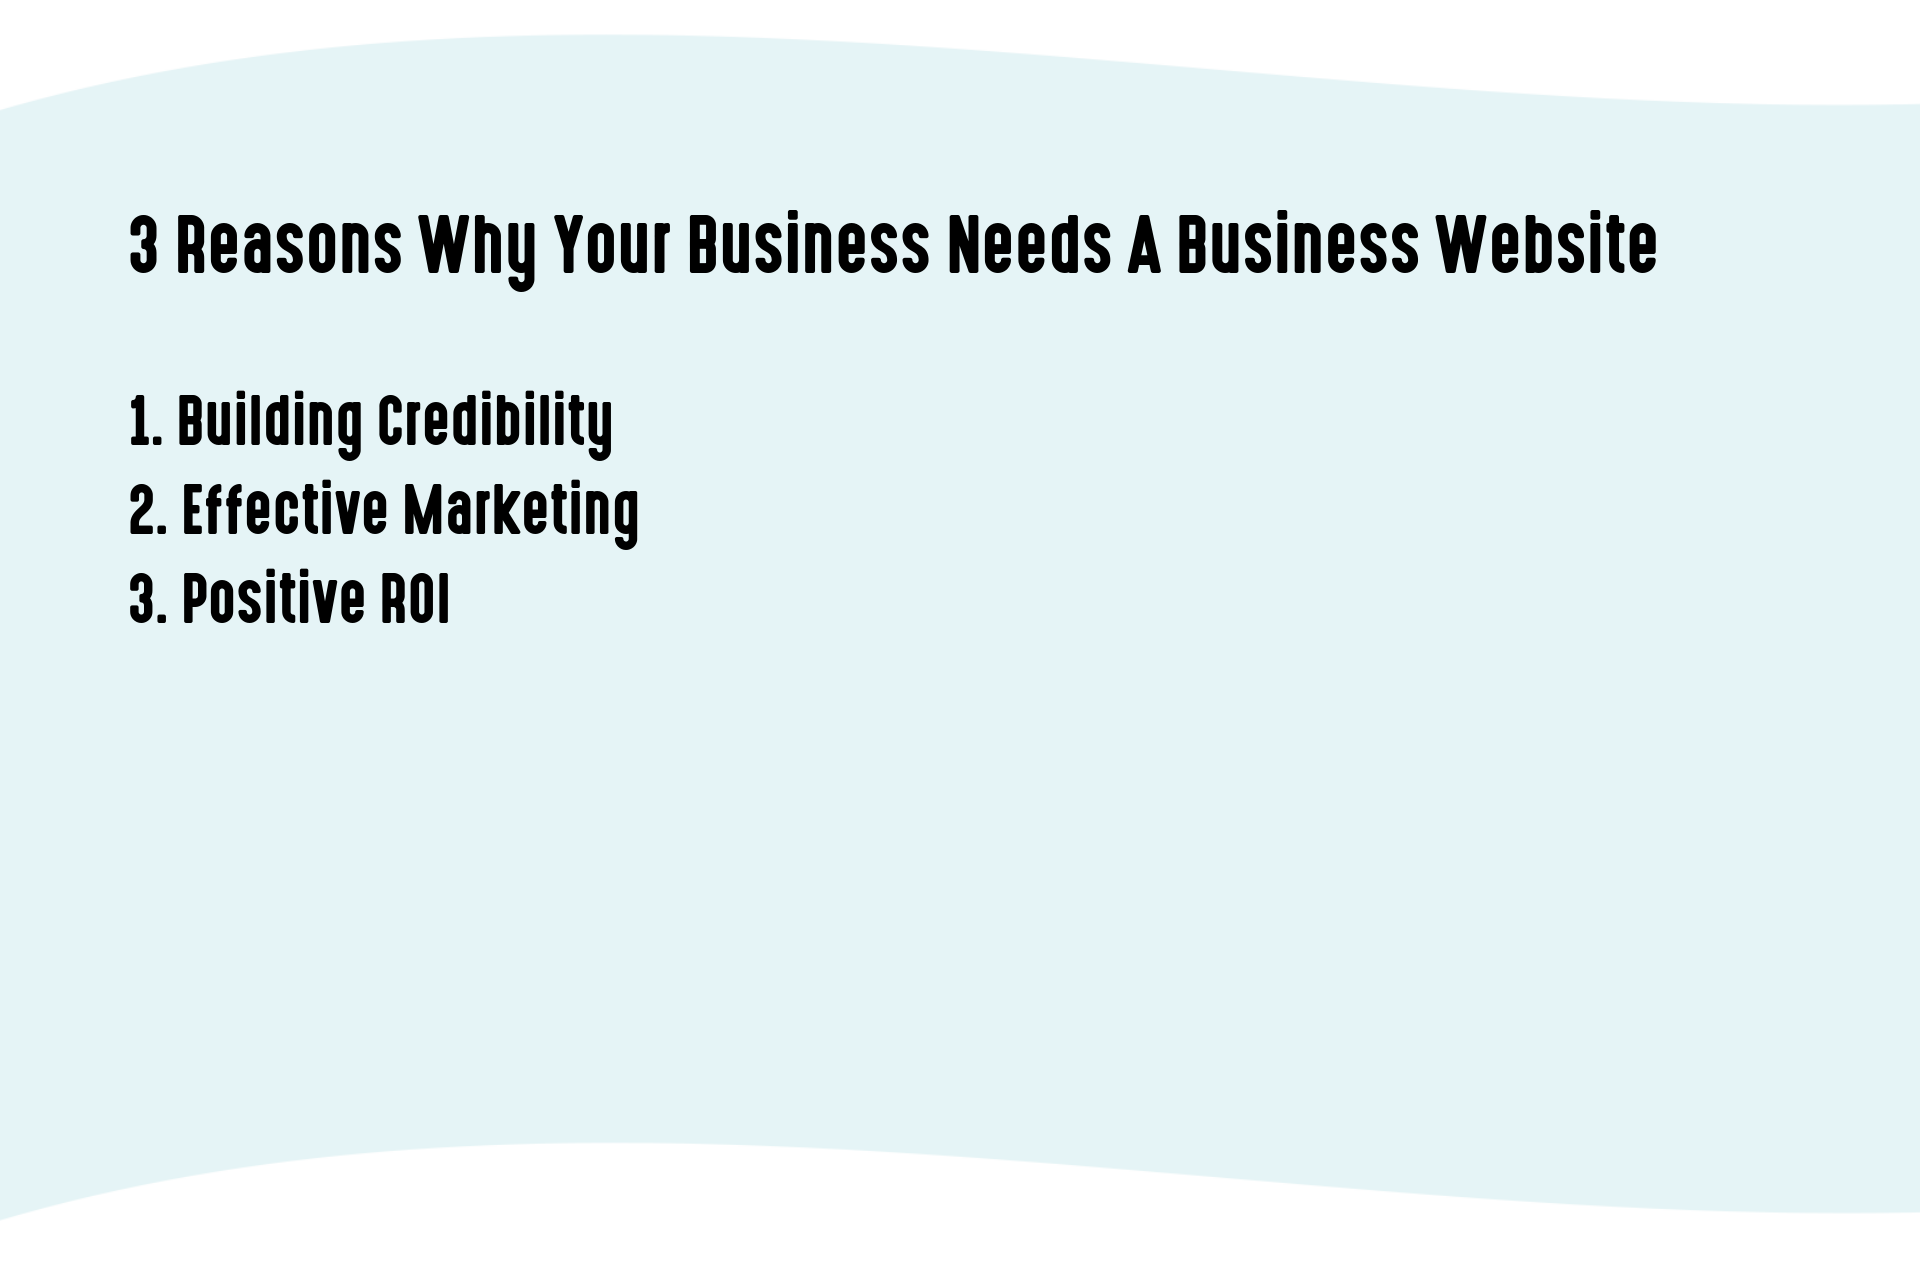 3 Reasons Why Your Business Needs A Business Website